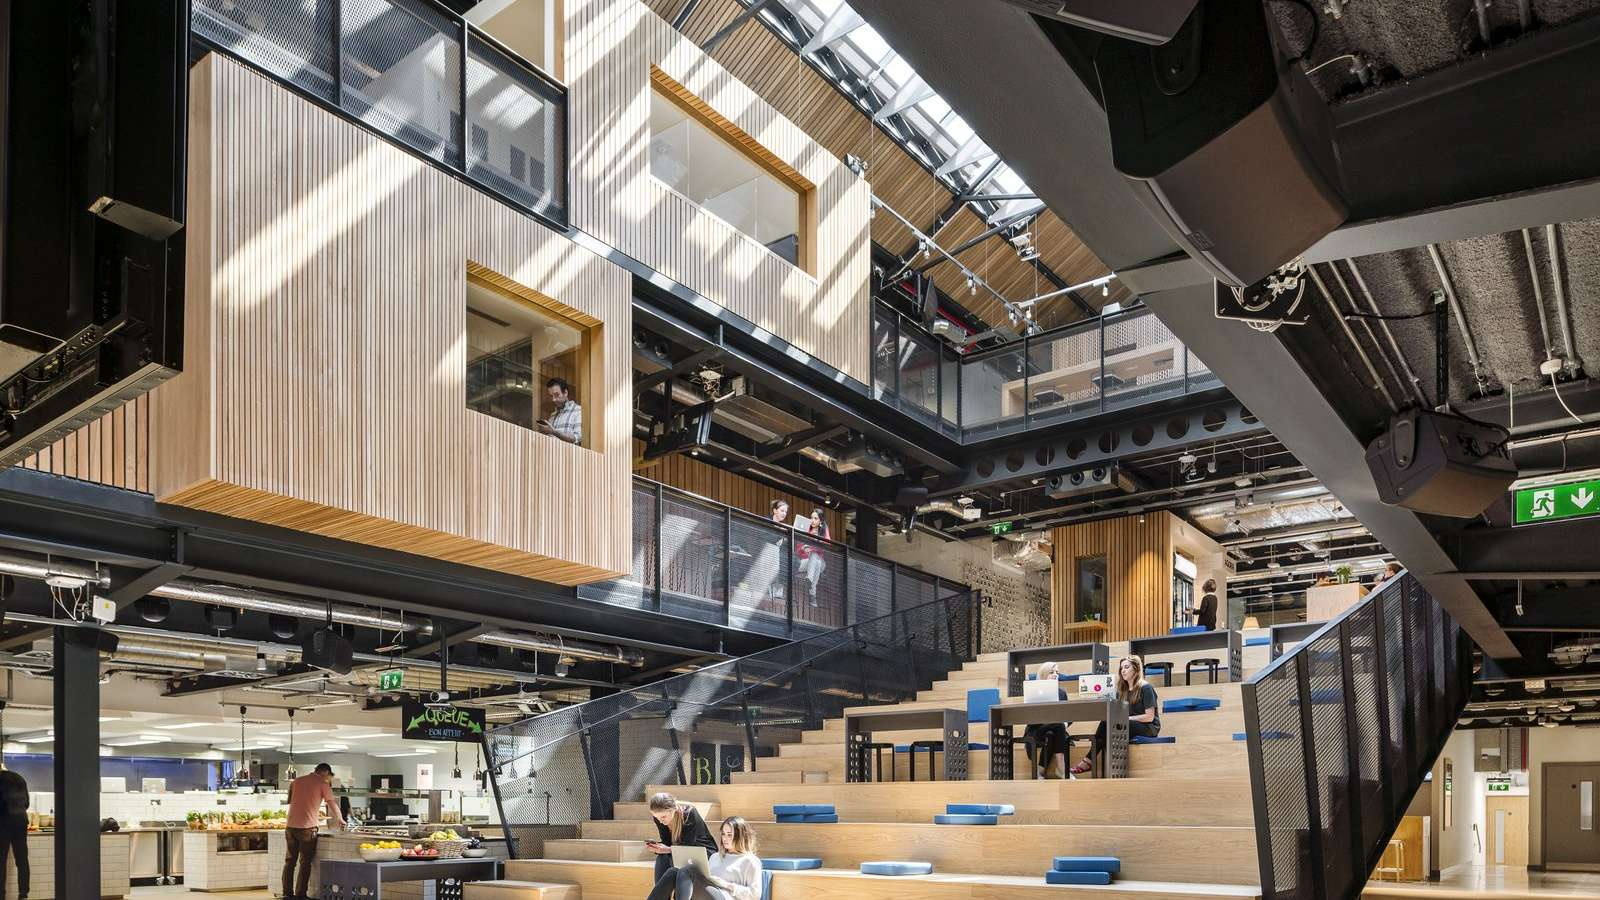 Airbnb Offices